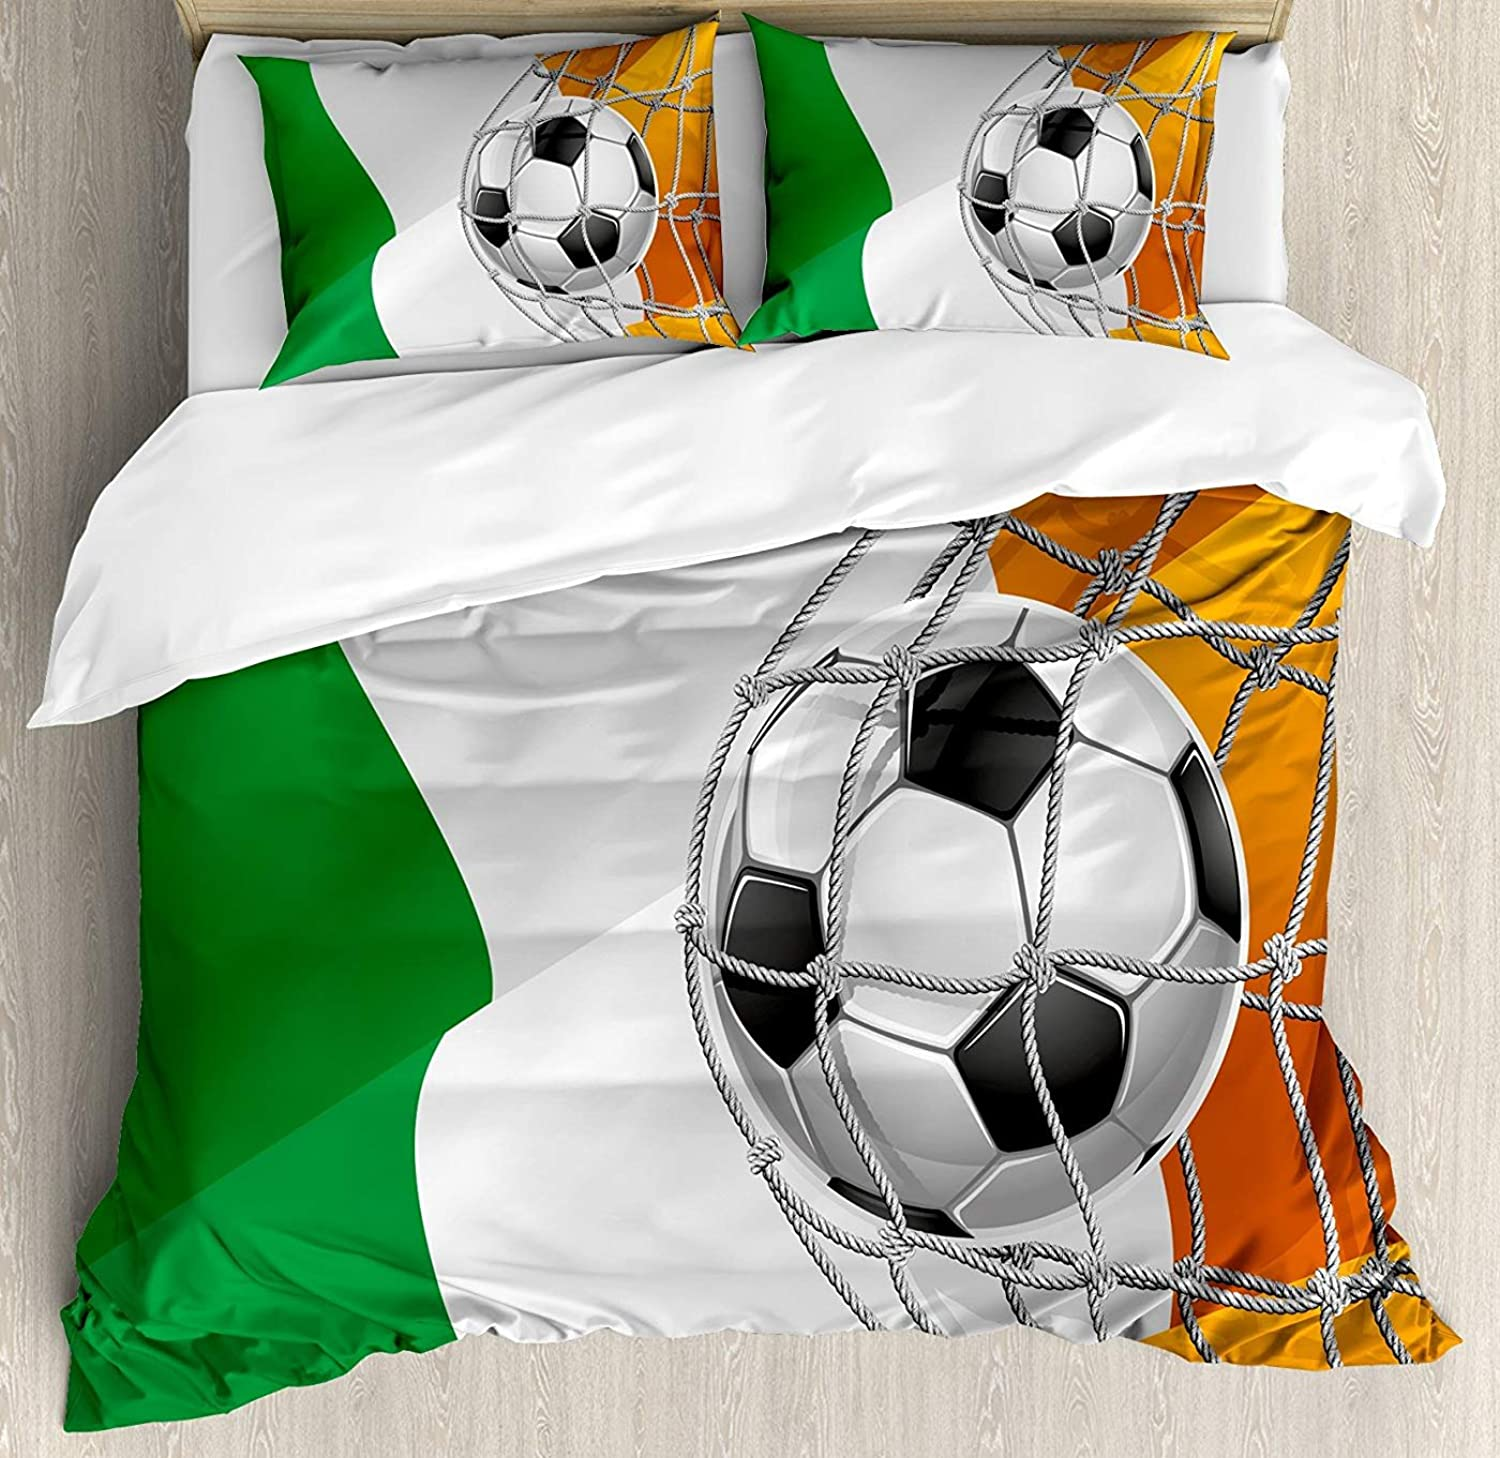 Irish Duvet Cover Set Twin Size, Sports Theme Soccer Ball in a Net Game Goal Ireland National Flag Victory Win,Lightweight Microfiber Duvet Cover Sets, Multicolor